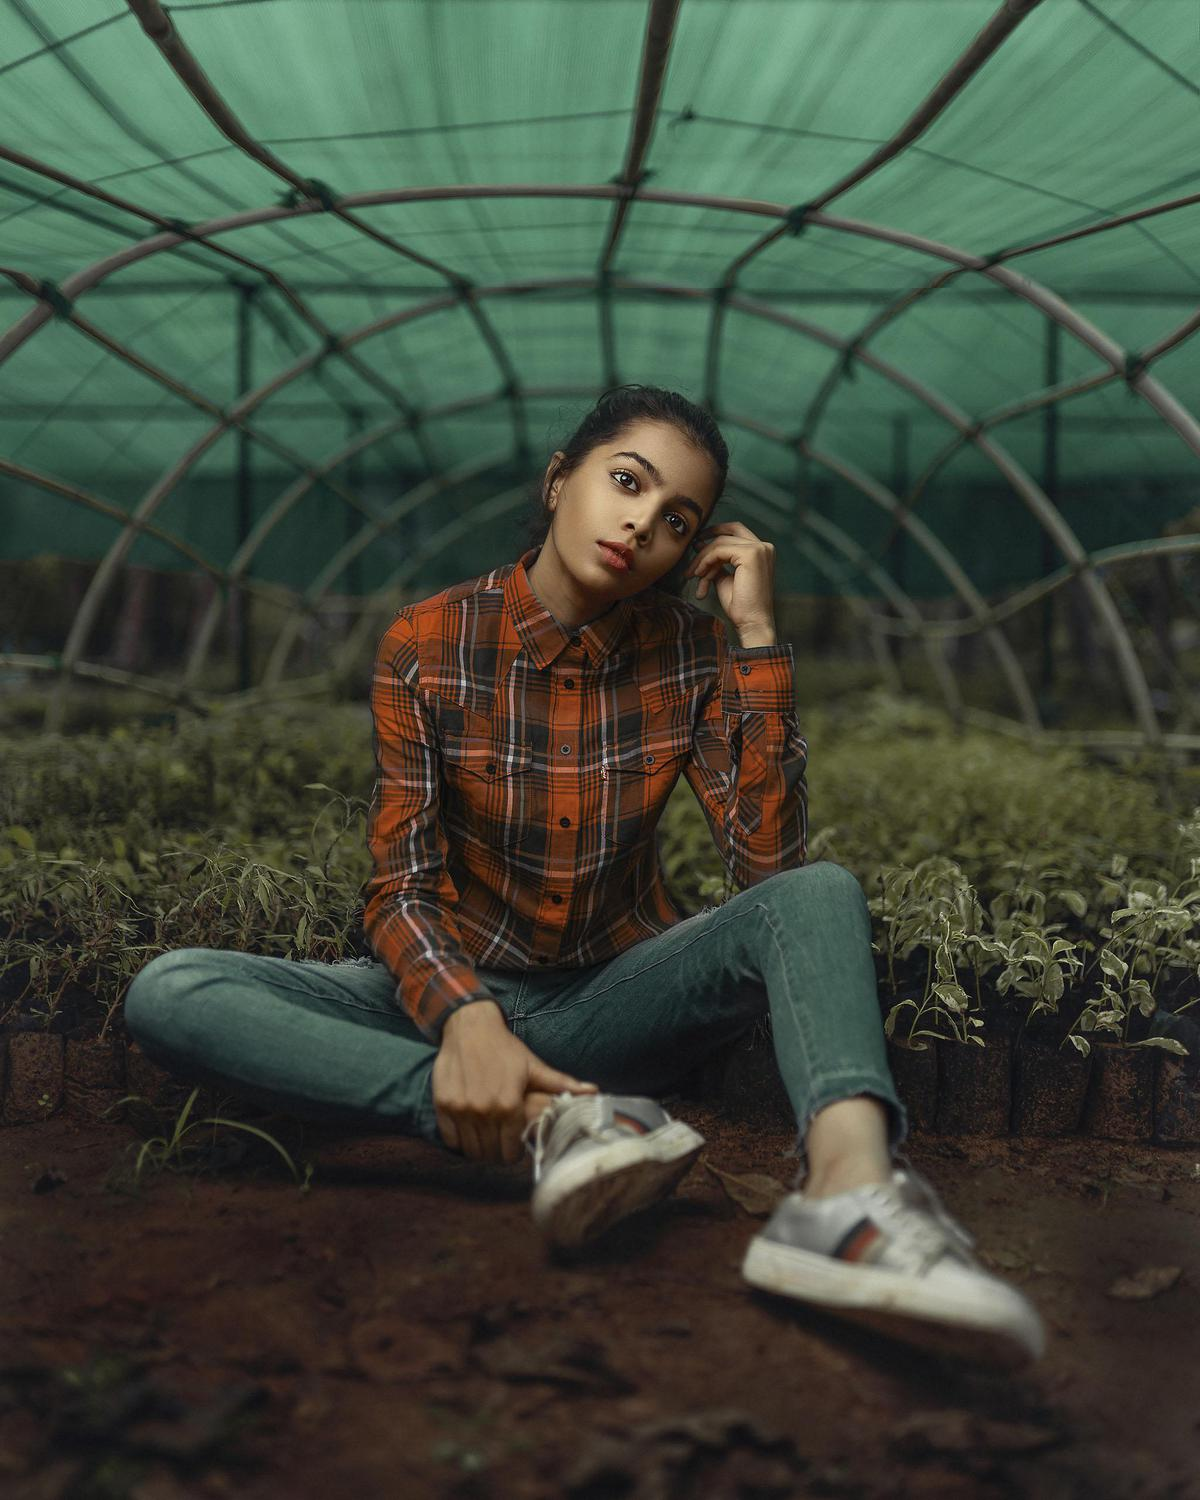 Image of Green, Photograph, Plaid, Sitting, Photo shoot, Cool etc.